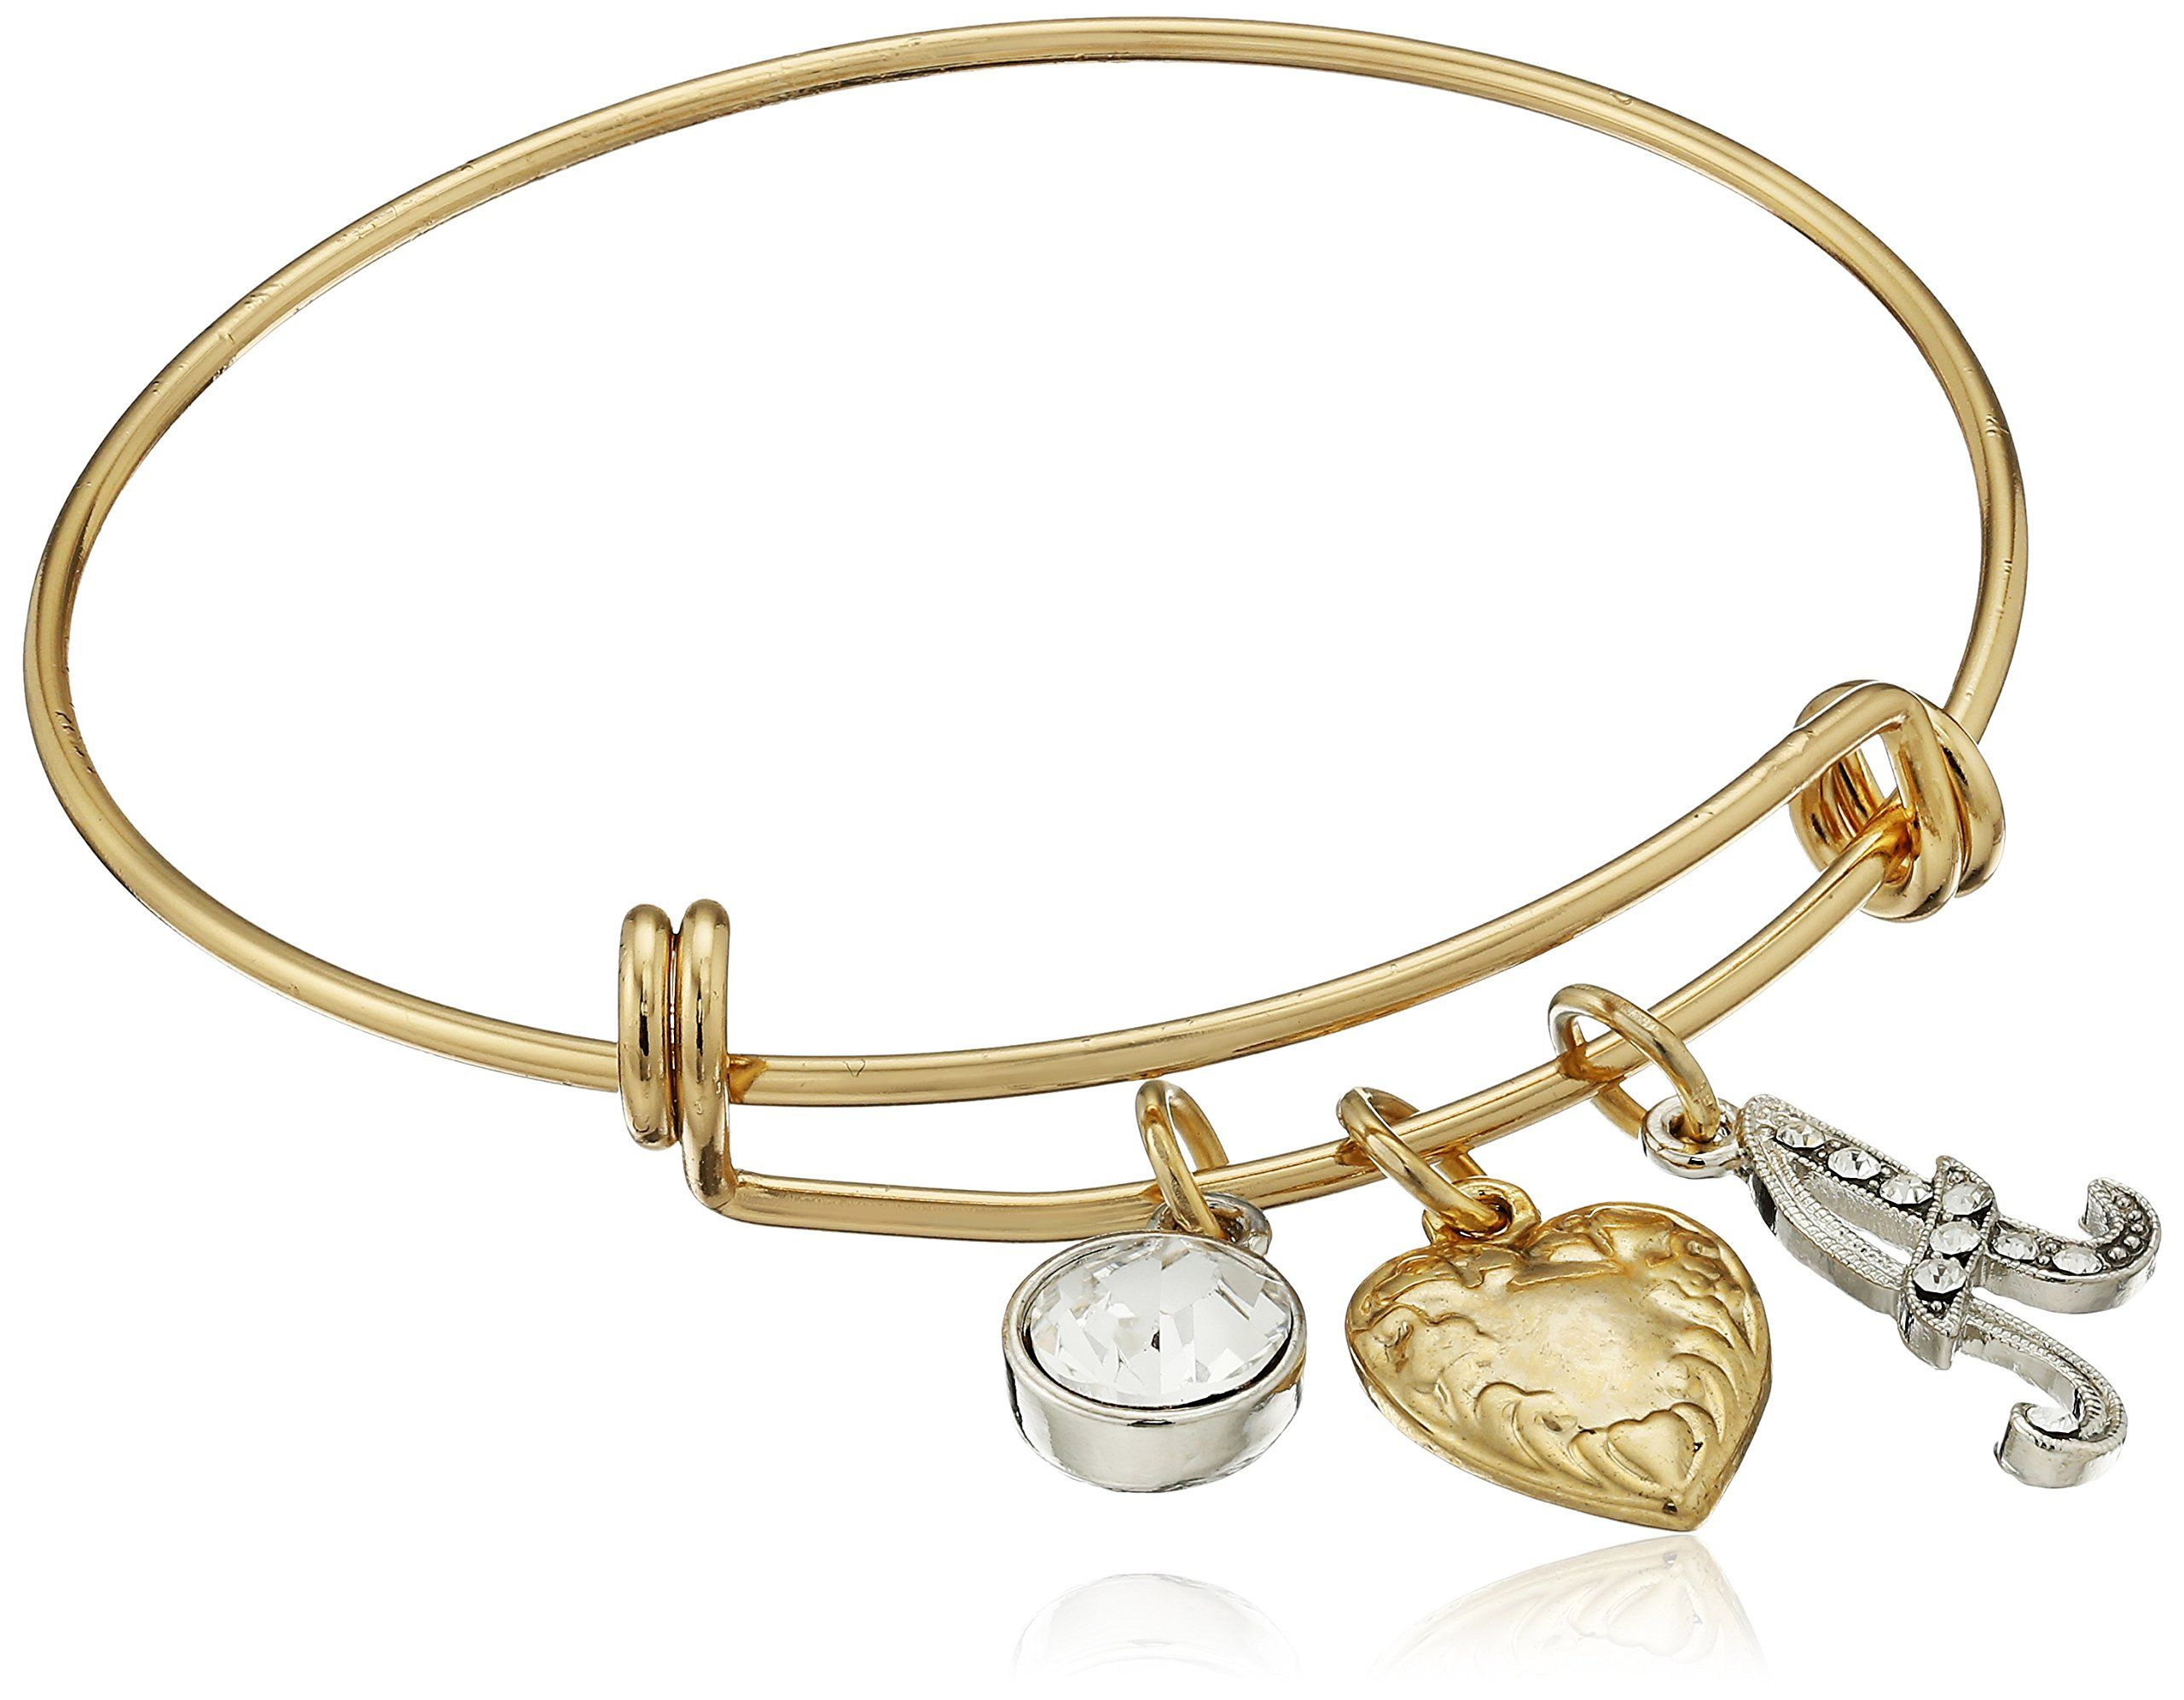 charm bracelets bangle bangles the bracelet around gold world